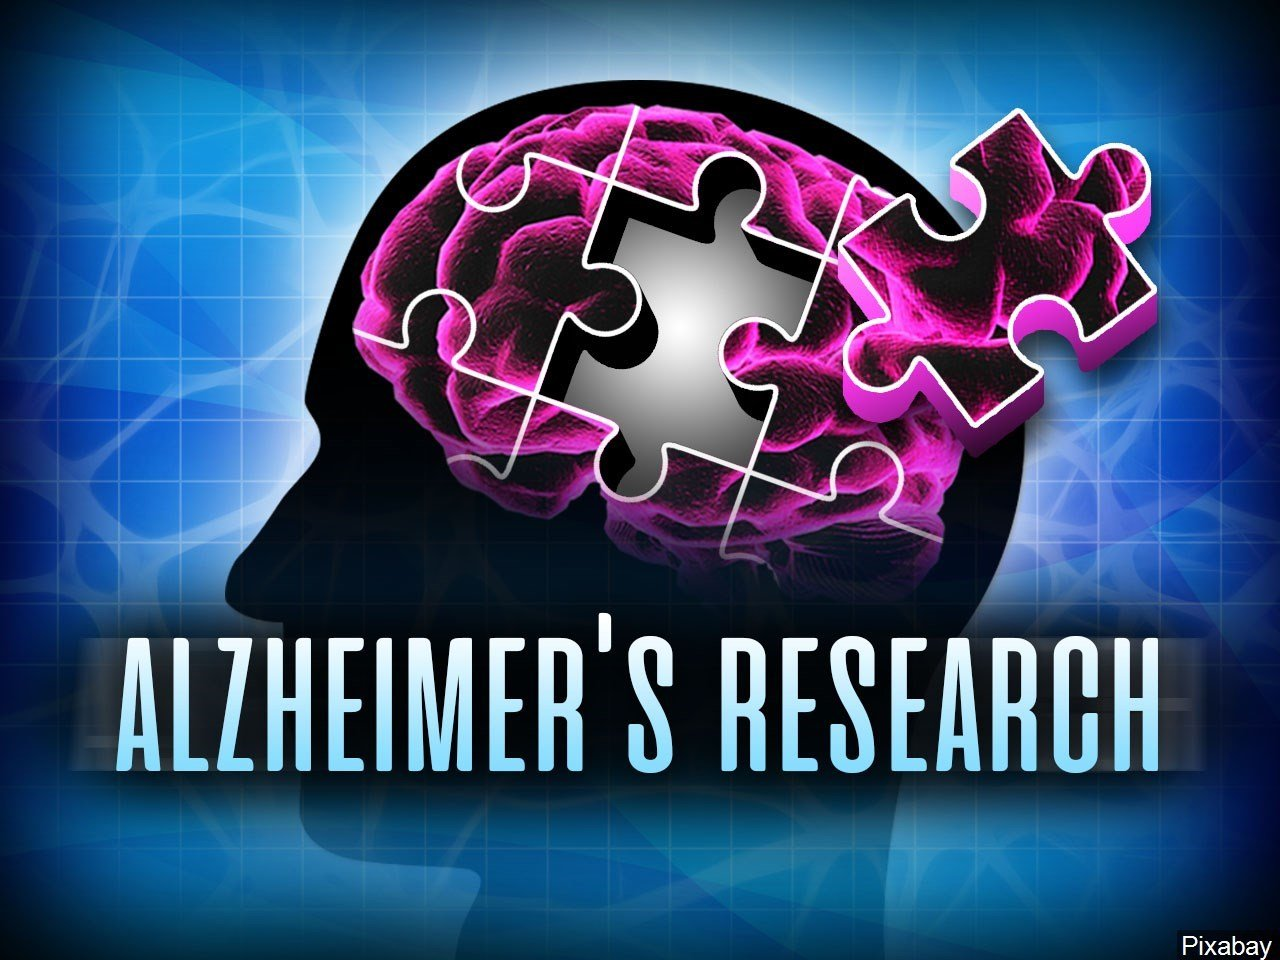 Herpes viruses common in brains with Alzheimer's disease